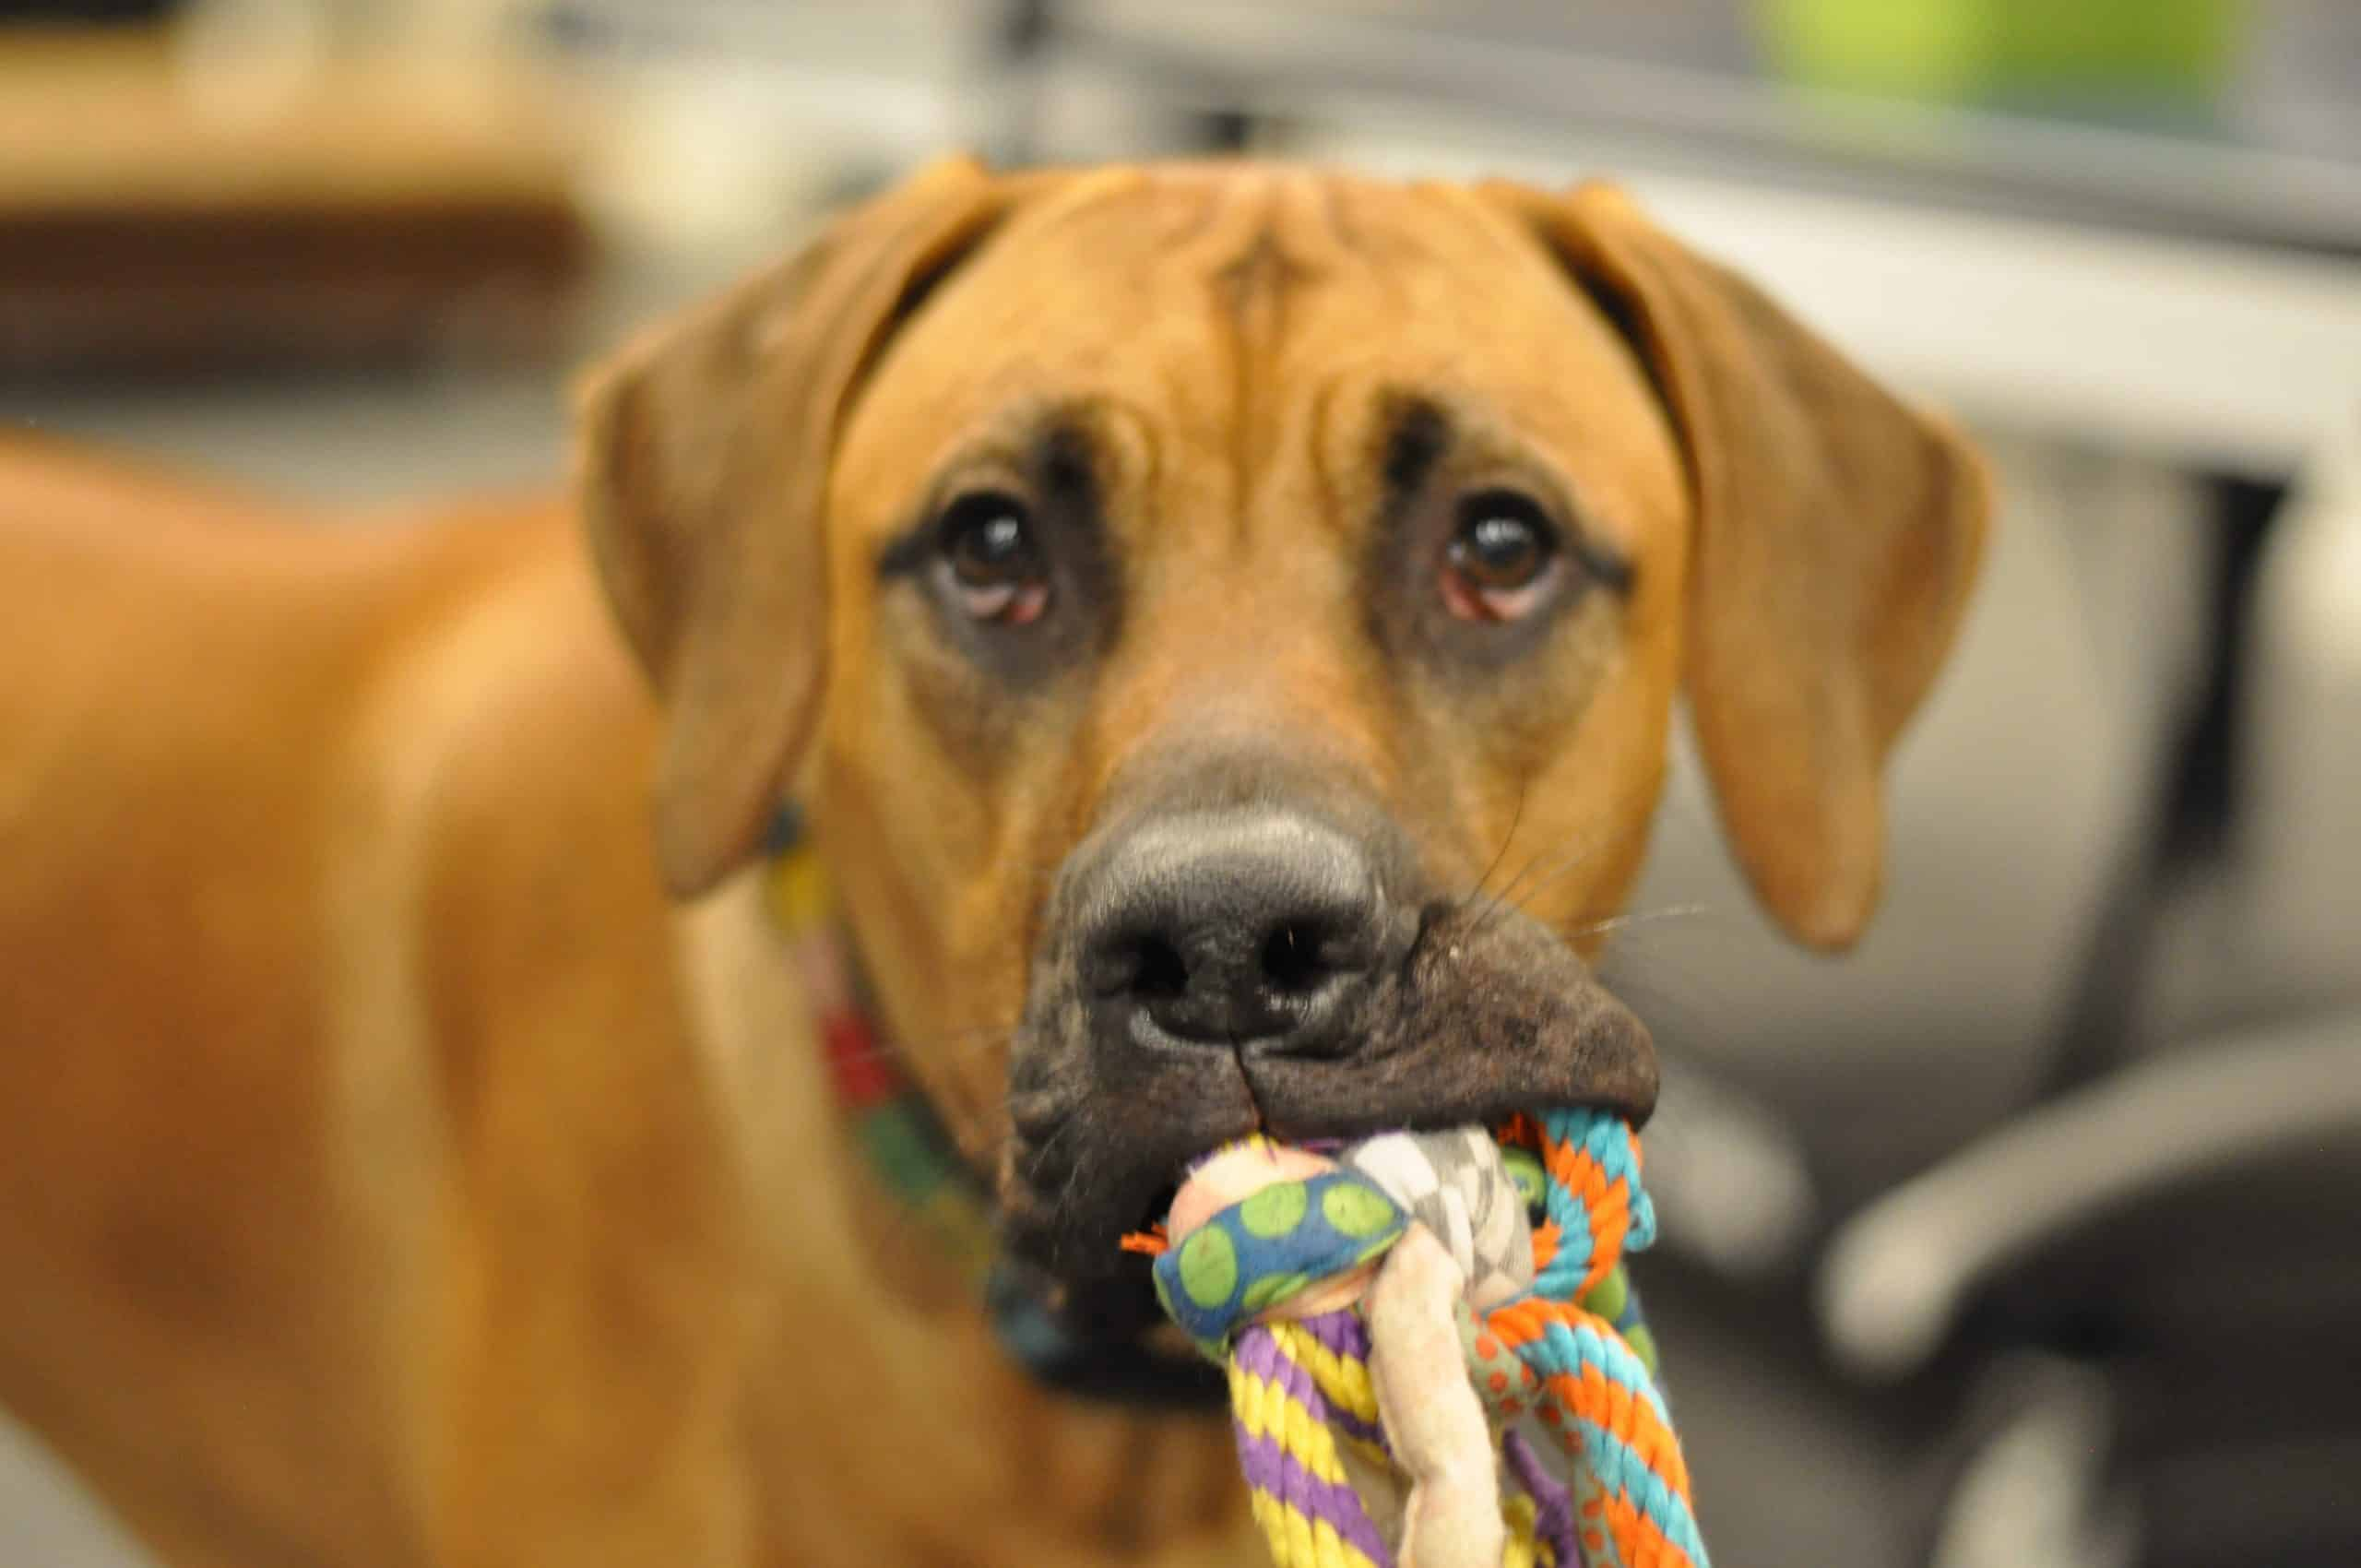 Dog with a toy in its mouth looking at the camera